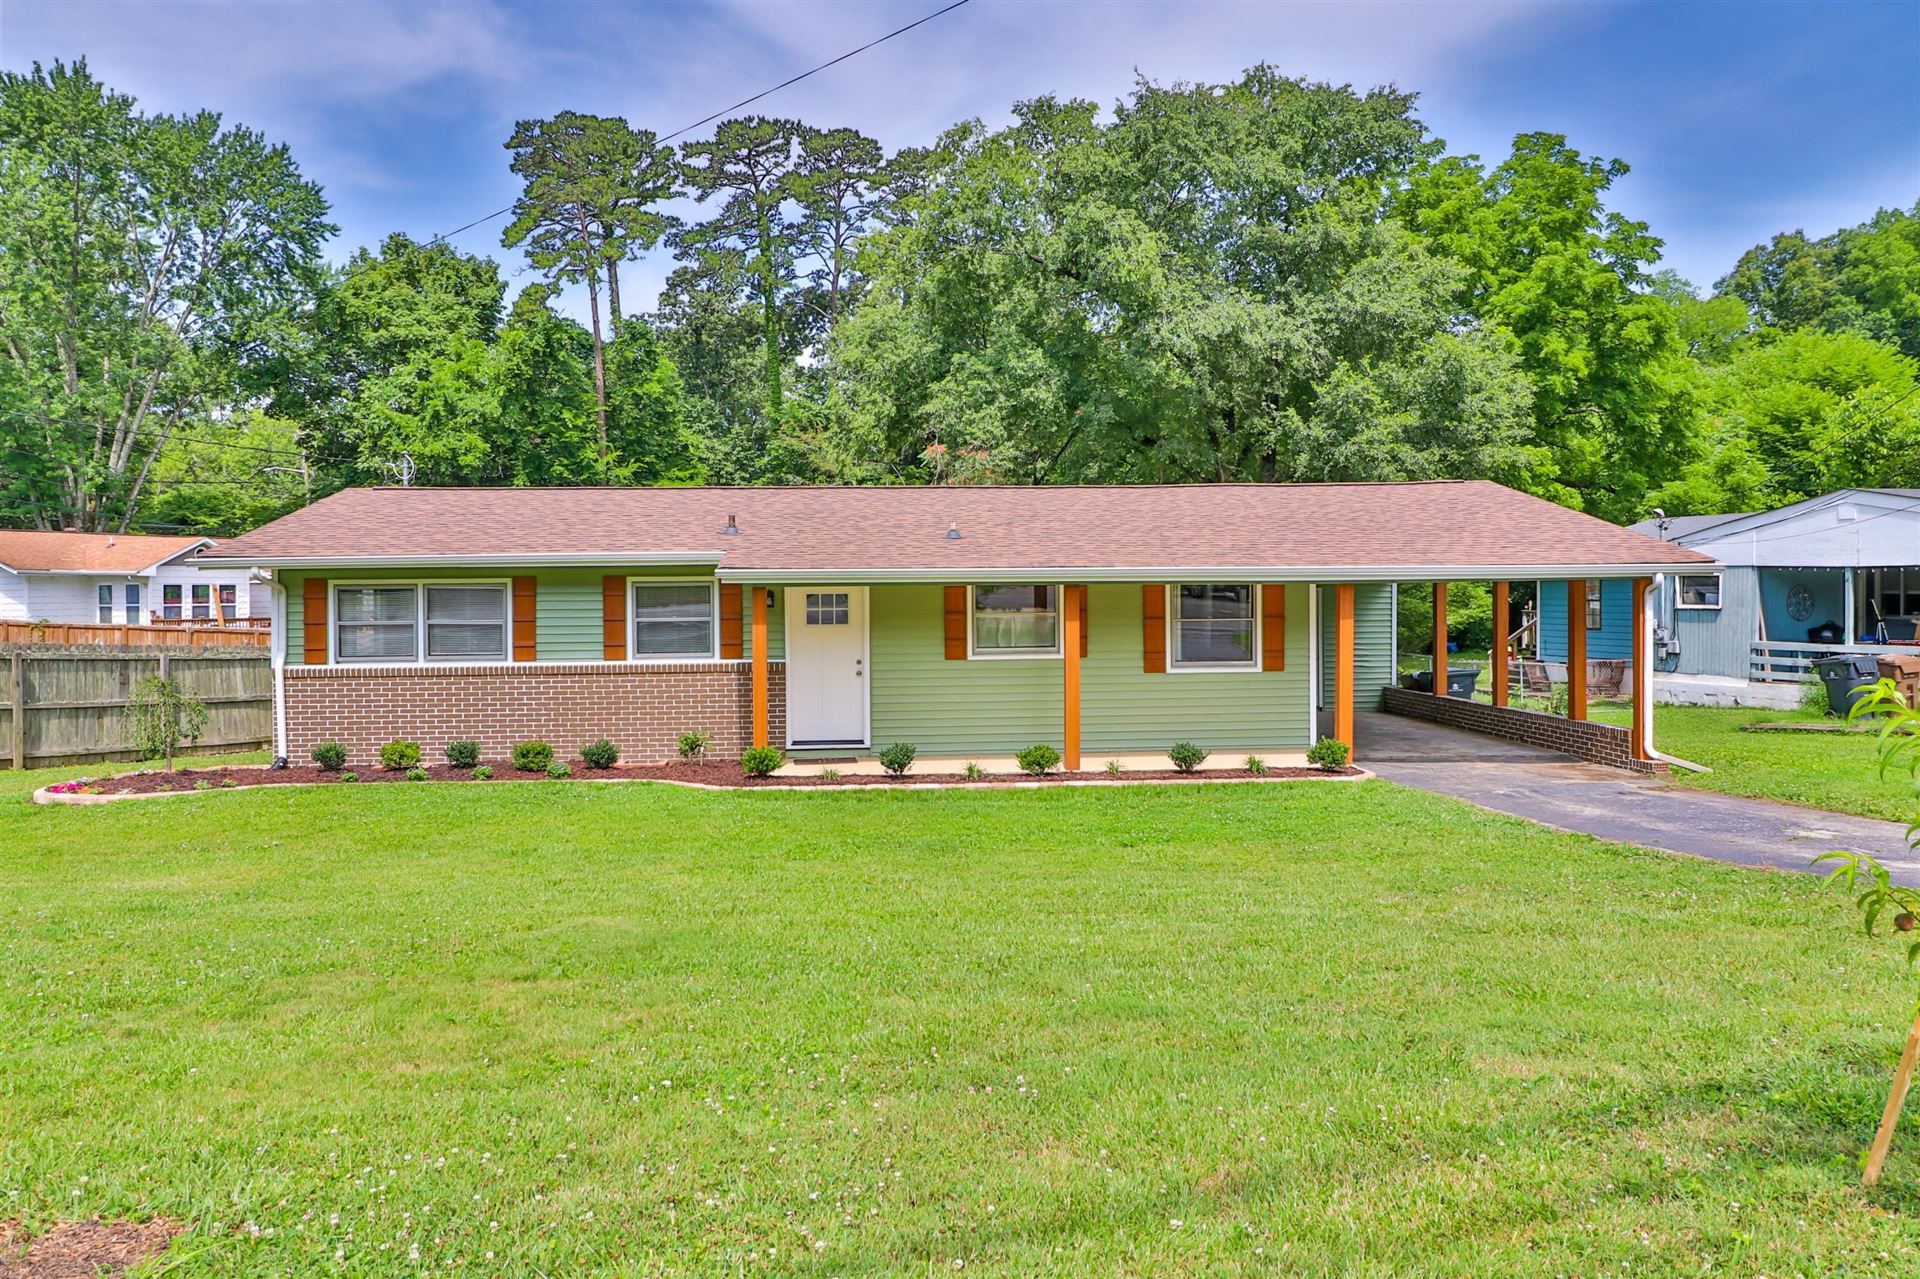 Photo of 3005 Hazelwood Rd, Knoxville, TN 37921 (MLS # 1122050)